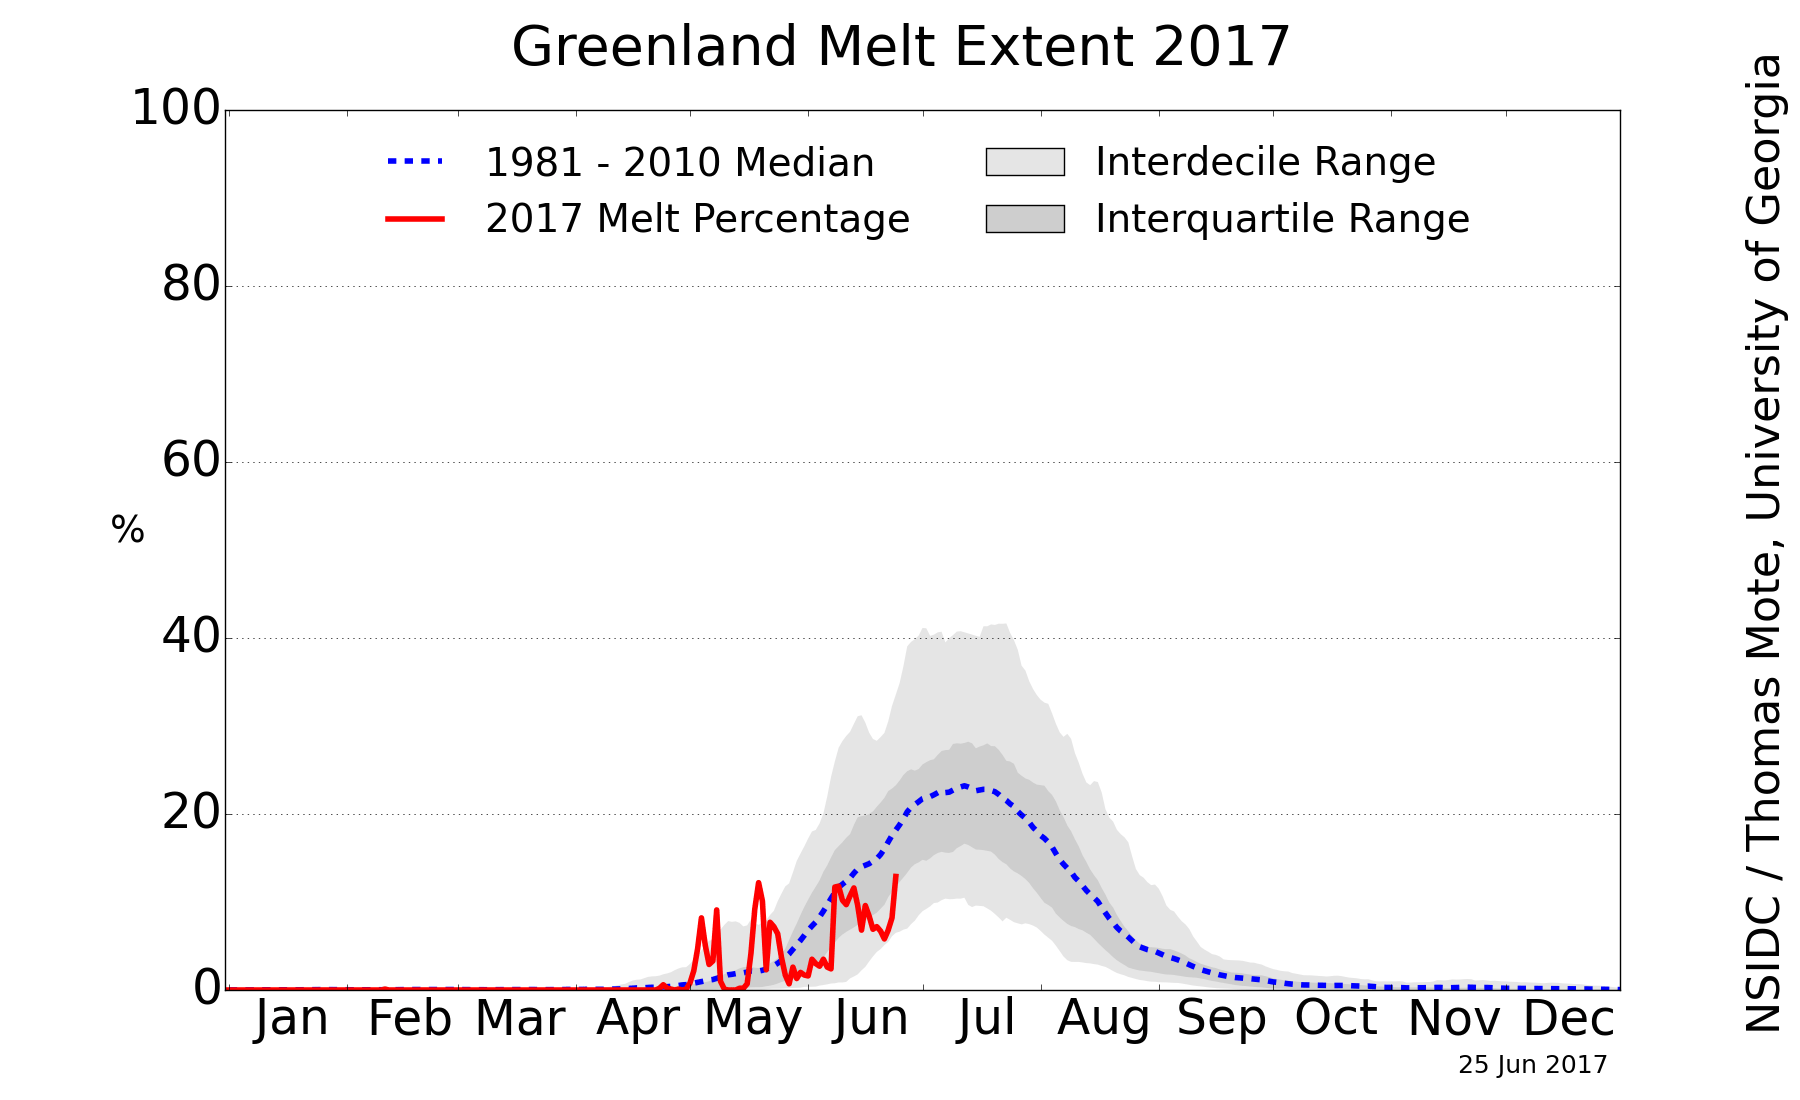 https://i1.wp.com/nsidc.org/greenland-today/images/greenland_melt_area_plot.png